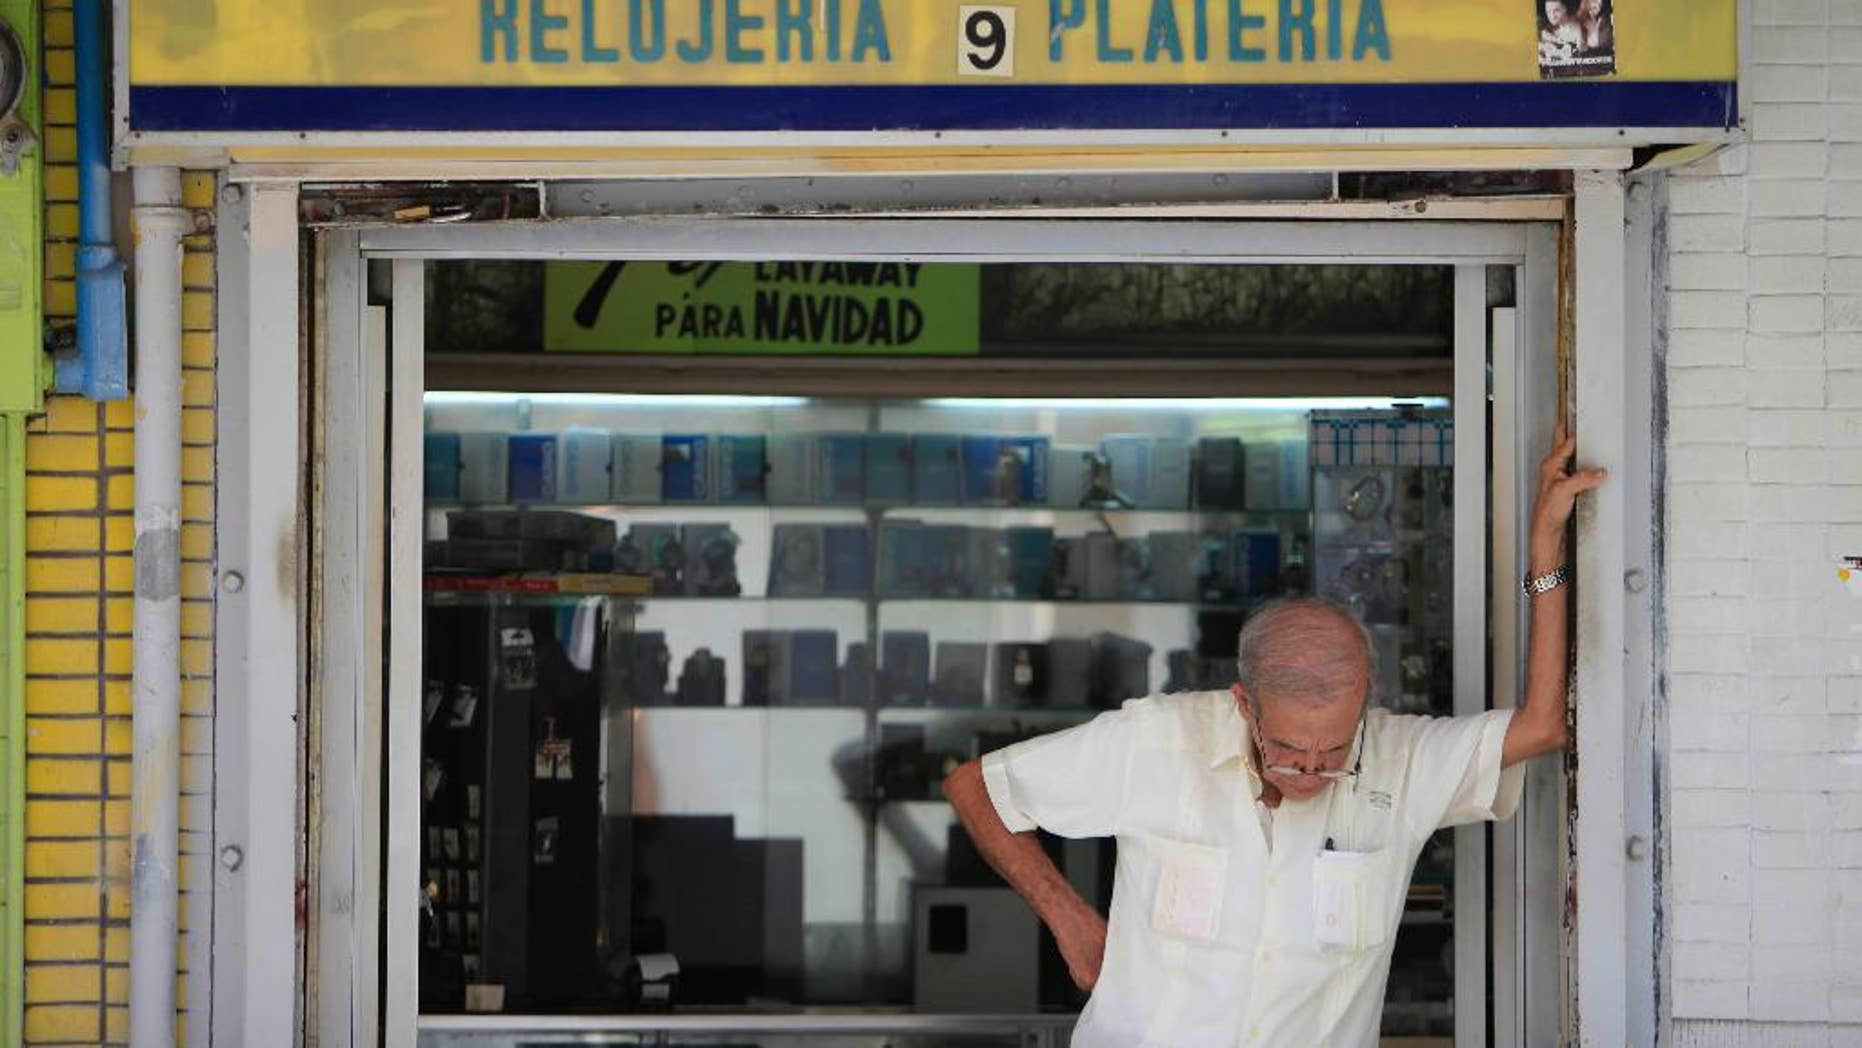 A man stands in front of a jewelry store in the neighborhood of Rio Piedras in San Juan, Puerto Rico, Monday, June 29, 2015. The jewelry itself is surrounded by closed down businesses. International economists released a critical report on Puerto Rico's economy Monday on the heels of the governor's warning that the island can't pay its $72 billion public debt. (AP Photo/Ricardo Arduengo)